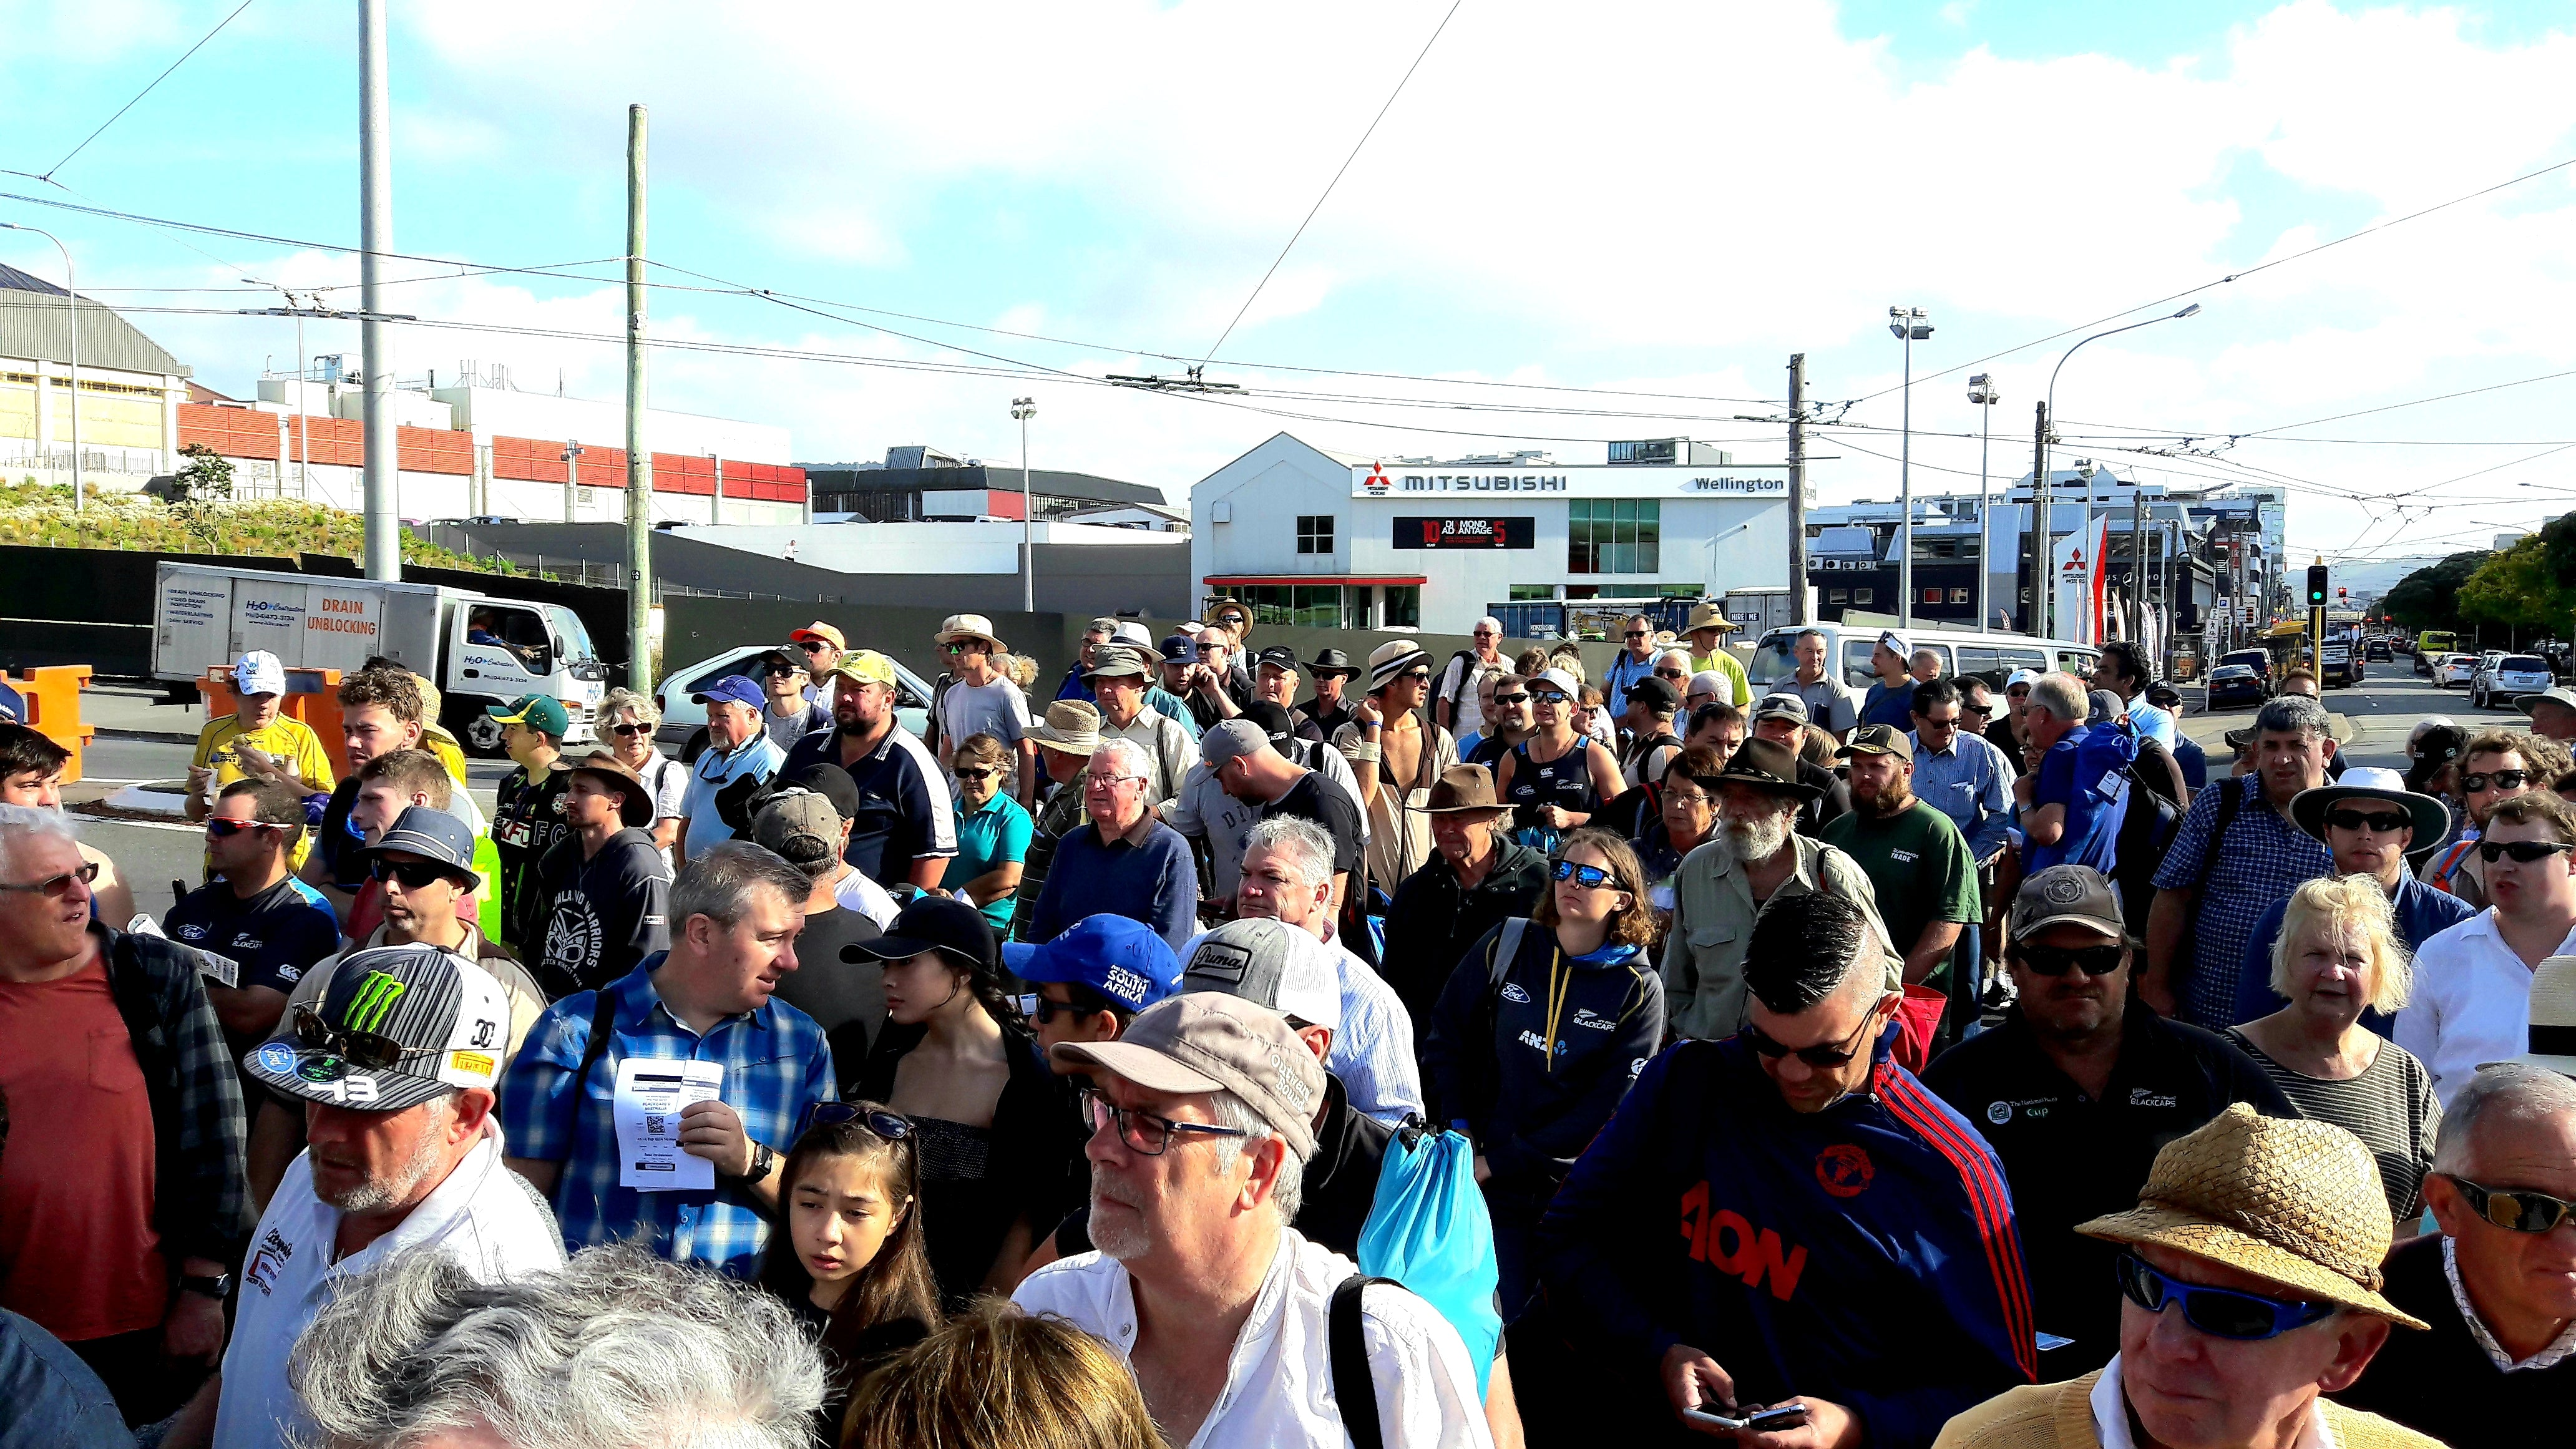 Australian Cricket Tours - The Crowd Lined Up Outside The Basin Reserve, Wellington, To Watch Australia Vs New Zealand In 2016